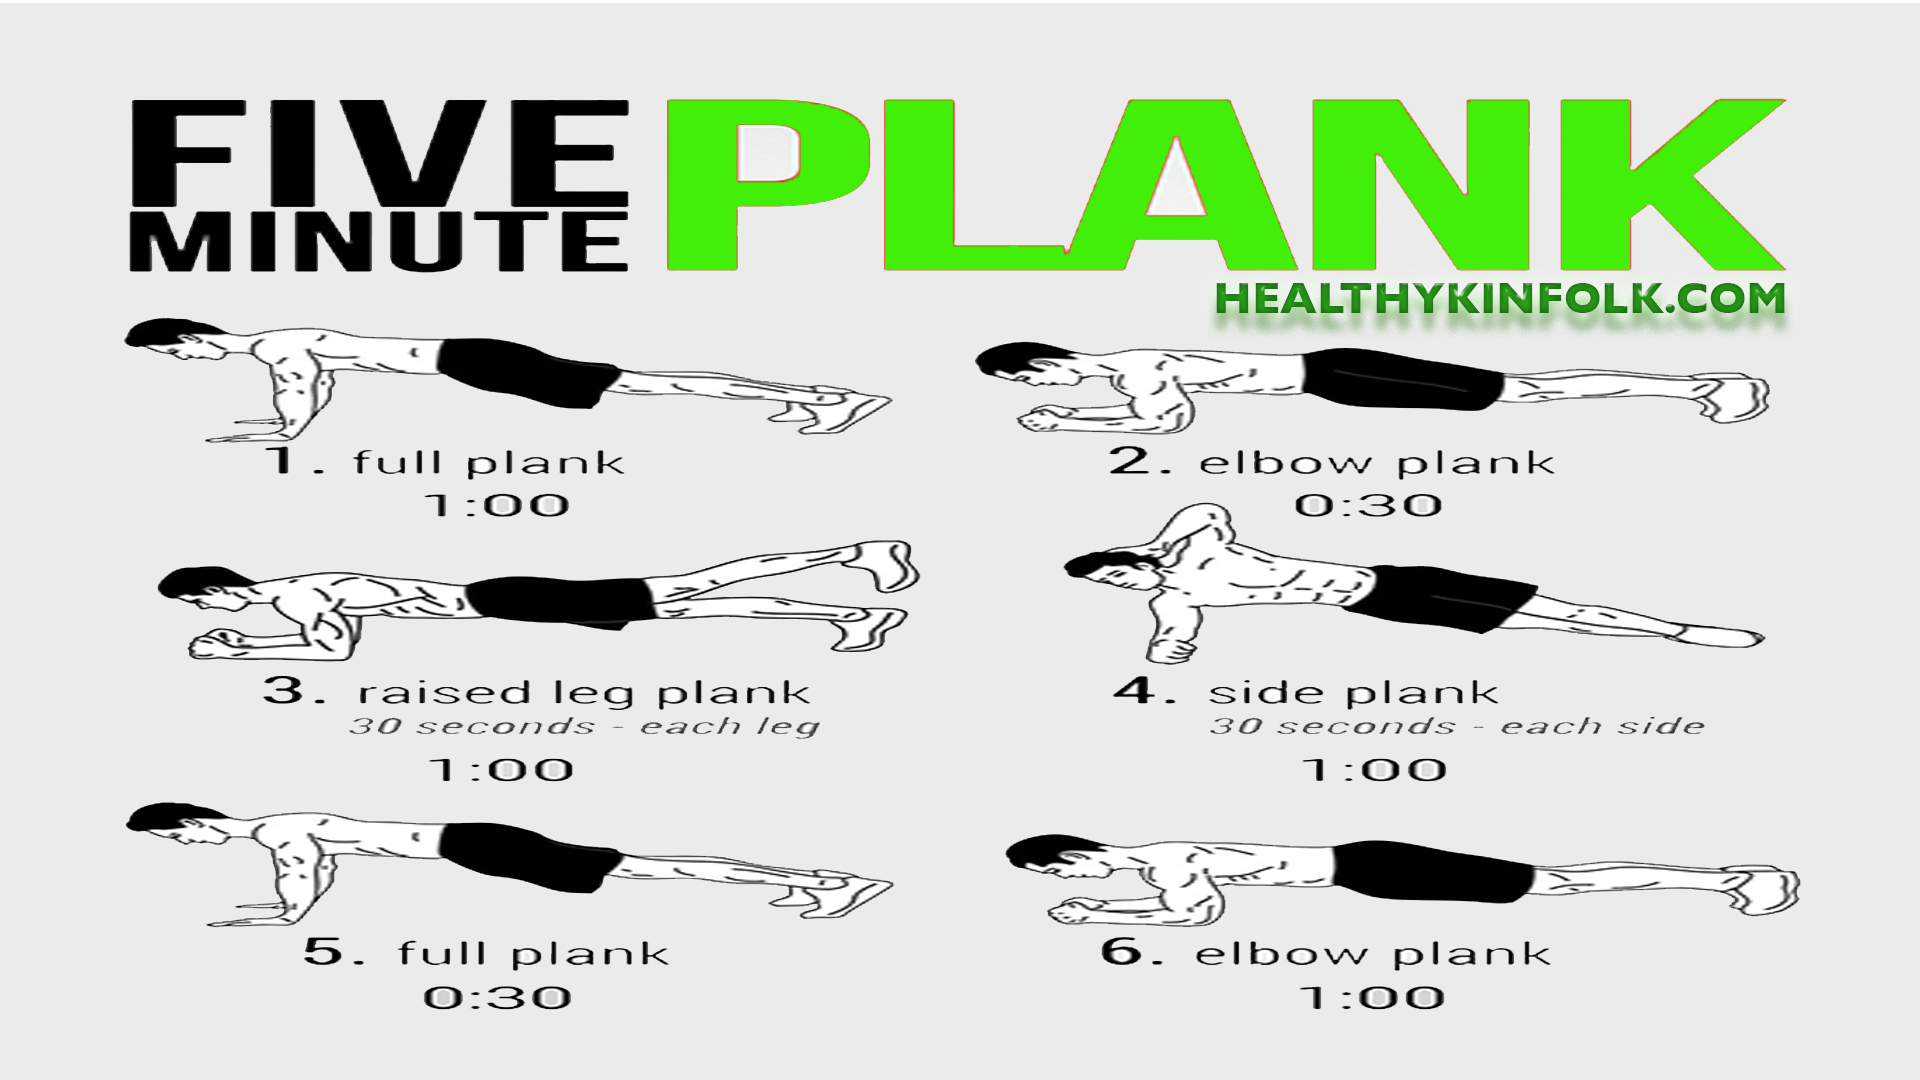 FIVE MINUTE PLANK WORKOUT ROUTINE